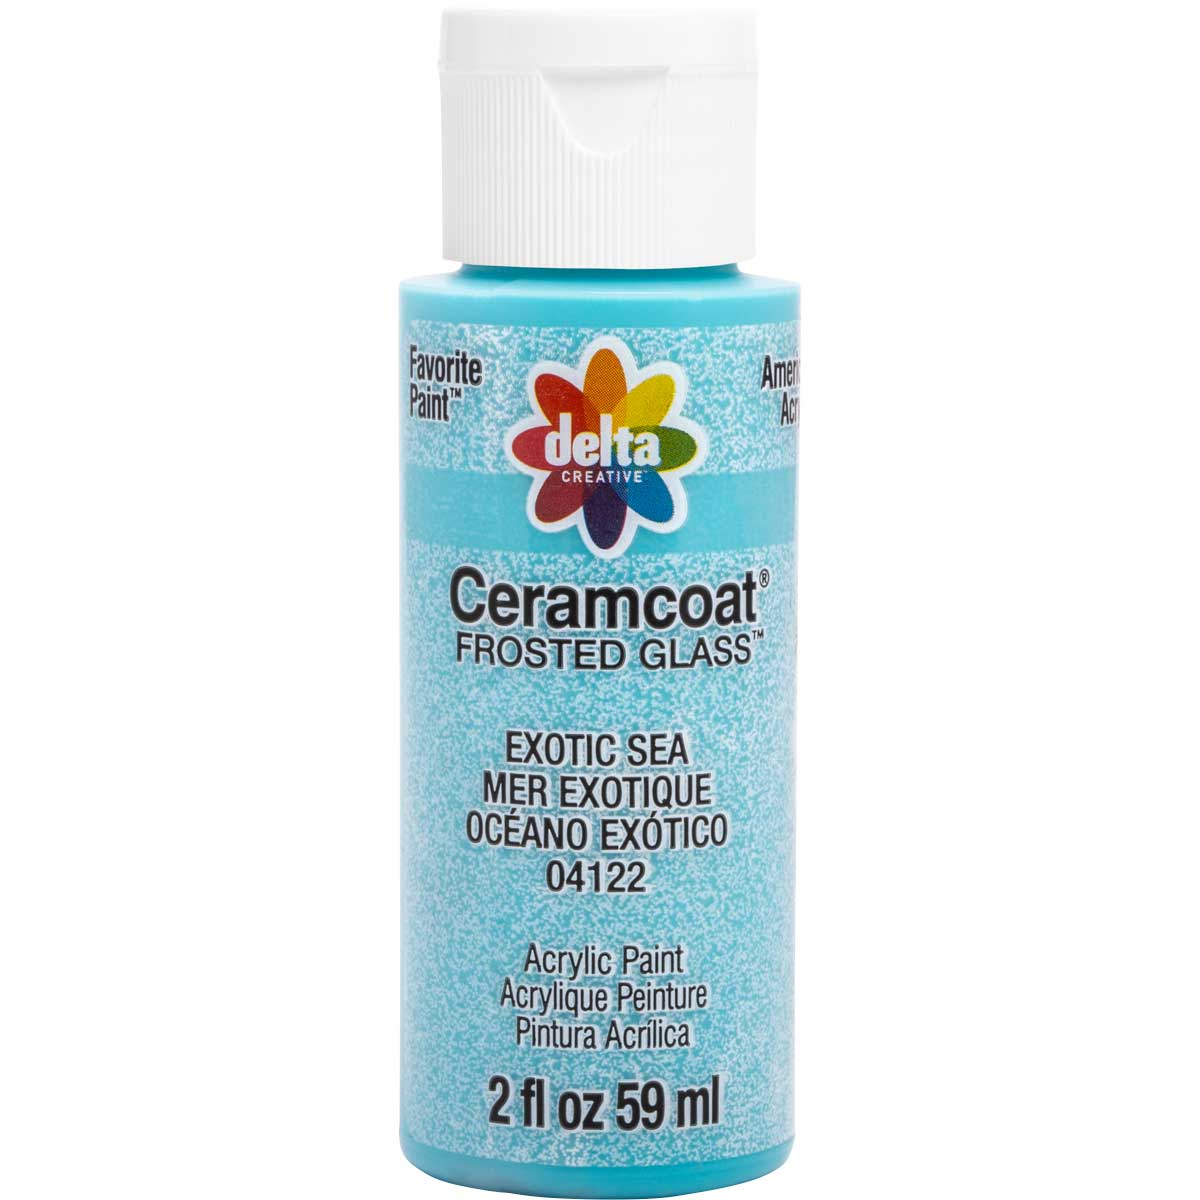 Delta Ceramcoat ® Frosted Glass Paint - Exotic Sea, 2 oz.